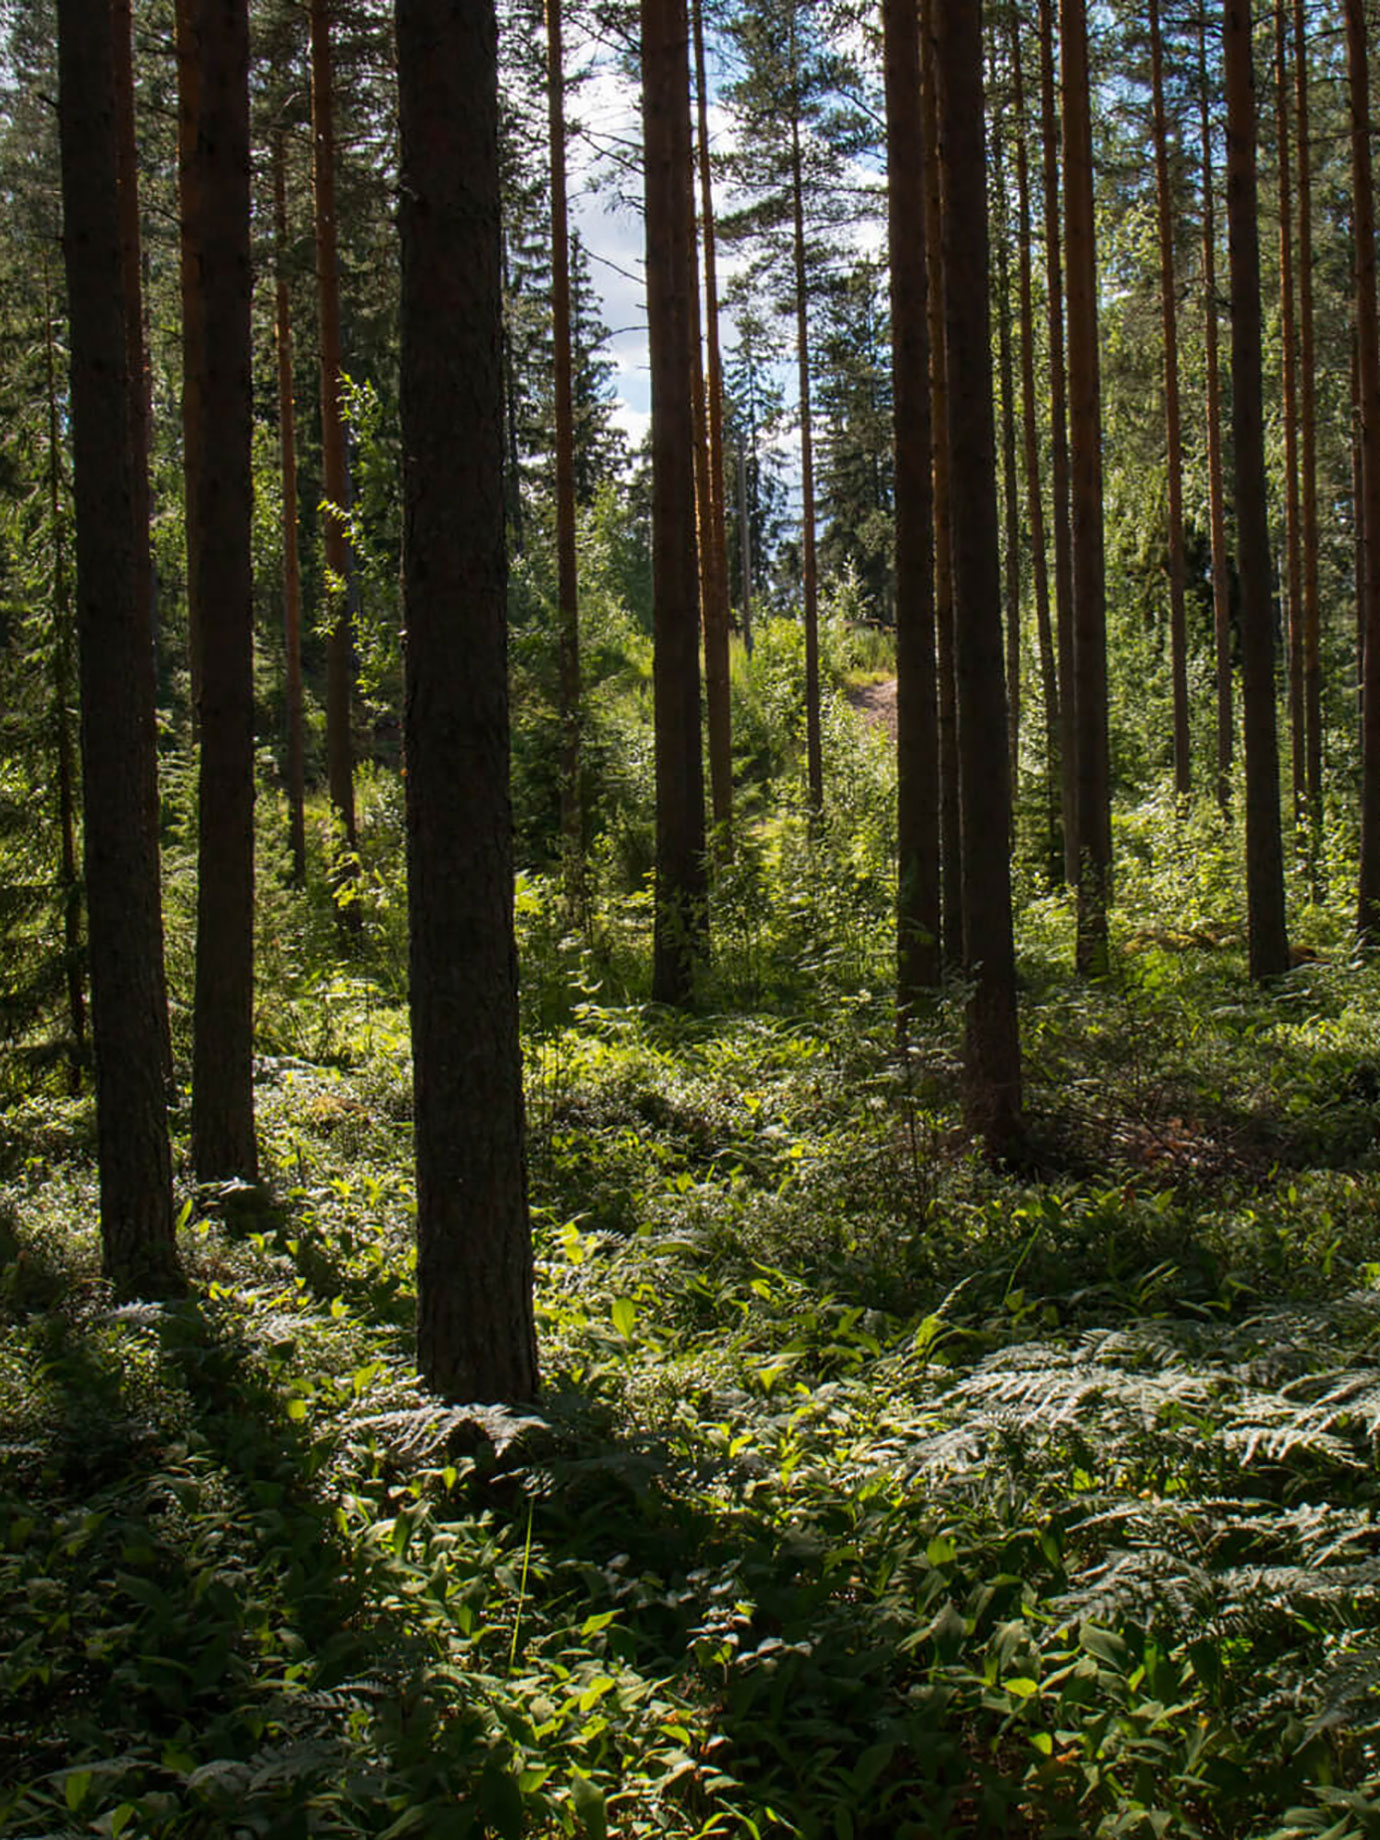 A forest.